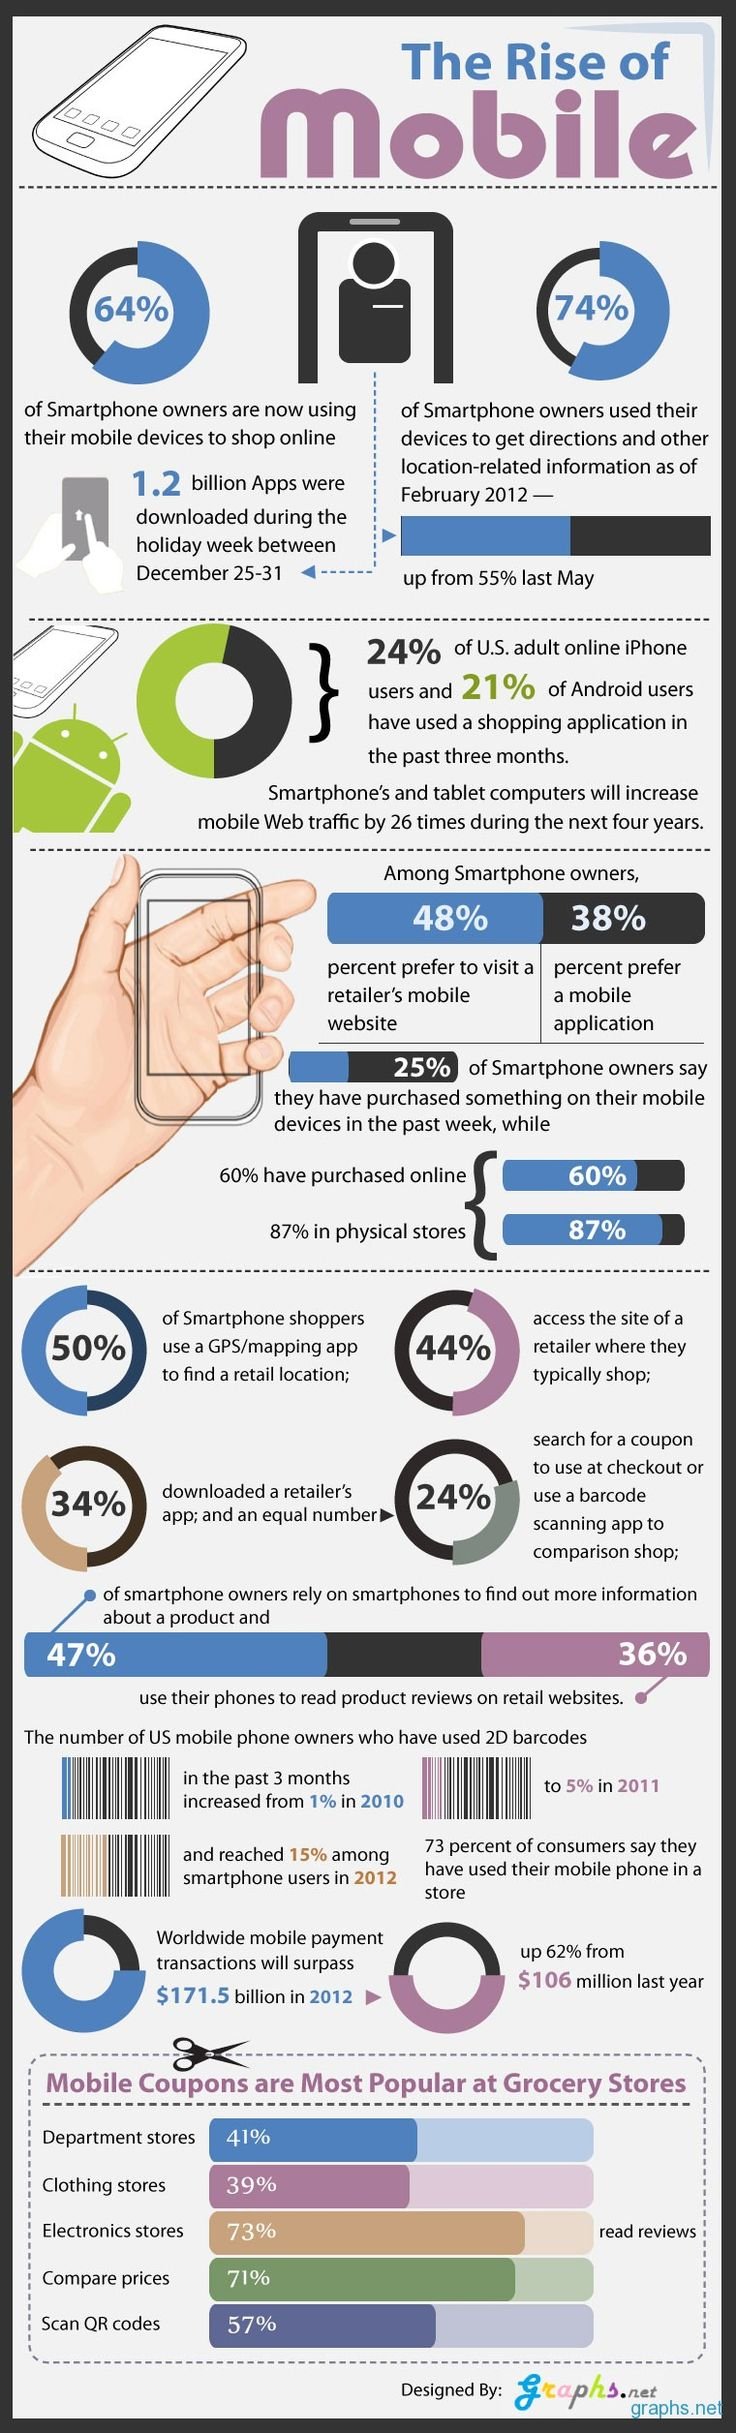 The Rise of Mobile